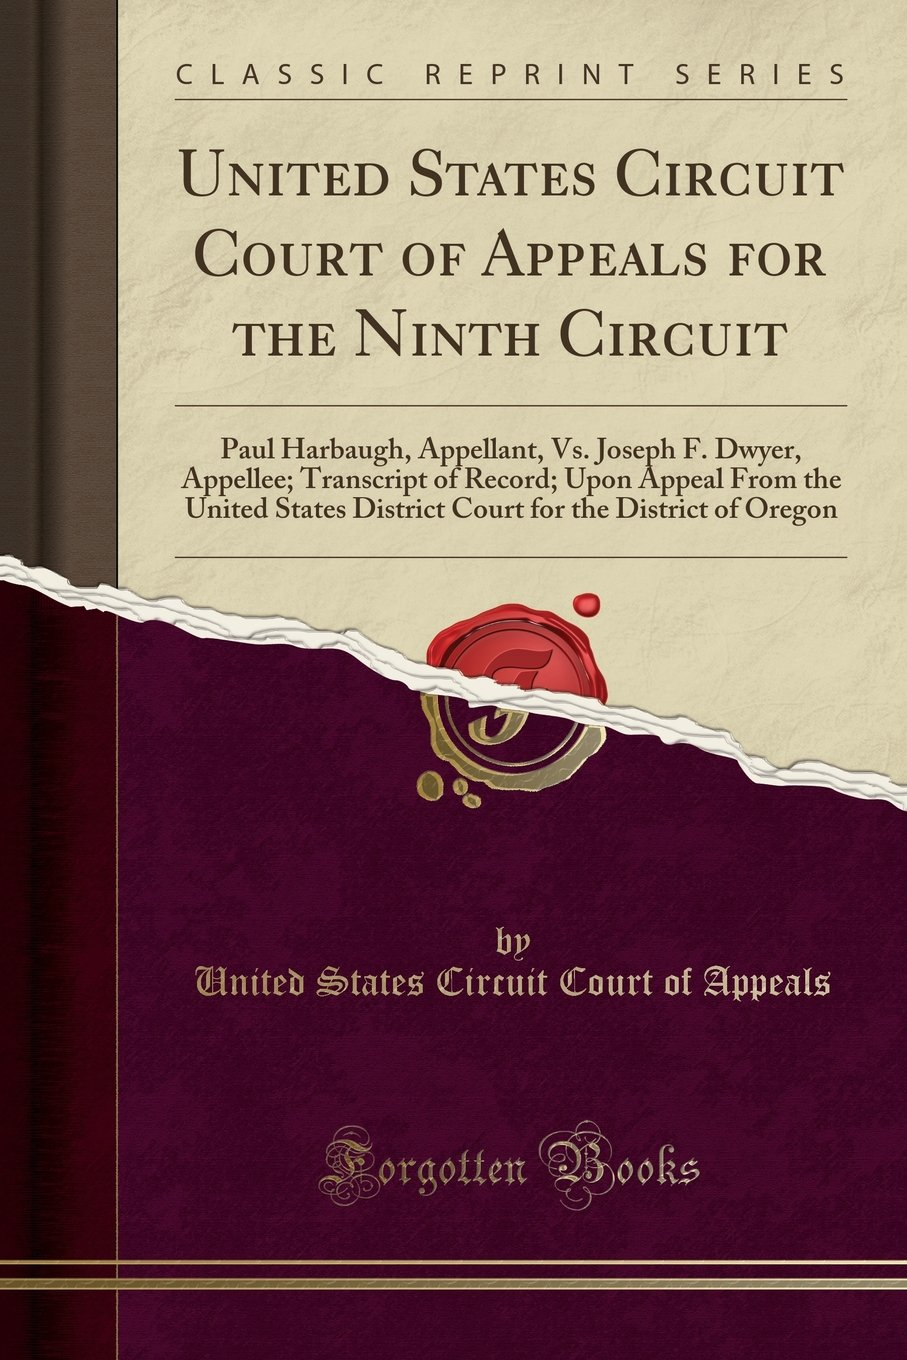 Download United States Circuit Court of Appeals for the Ninth Circuit: Paul Harbaugh, Appellant, vs. Joseph F. Dwyer, Appellee; Transcript of Record; Upon ... for the District of Oregon (Classic Reprint) PDF